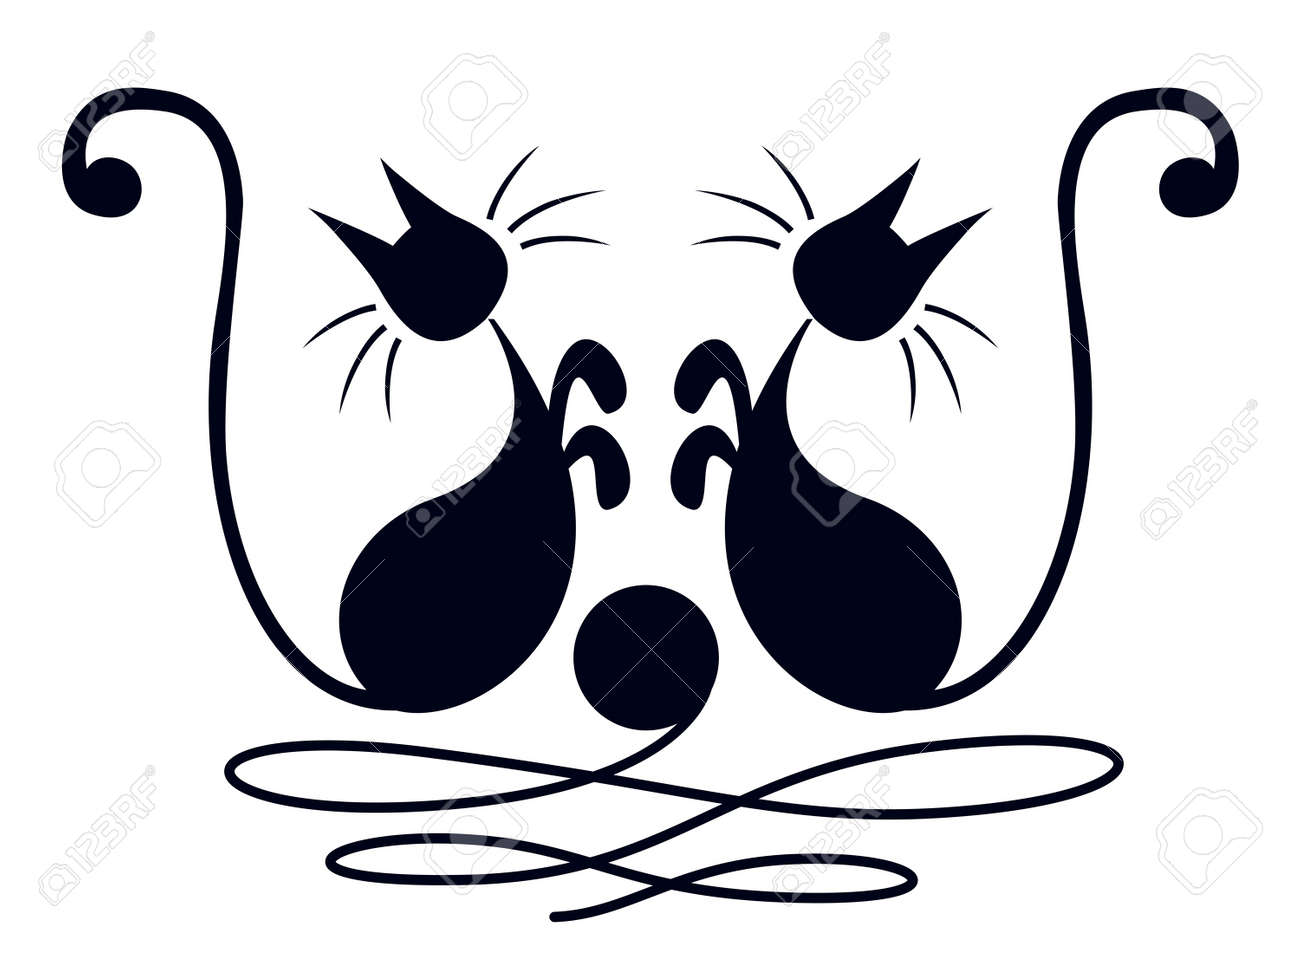 Two black cats playing with skein of wool over white background Stock Vector - 16682724